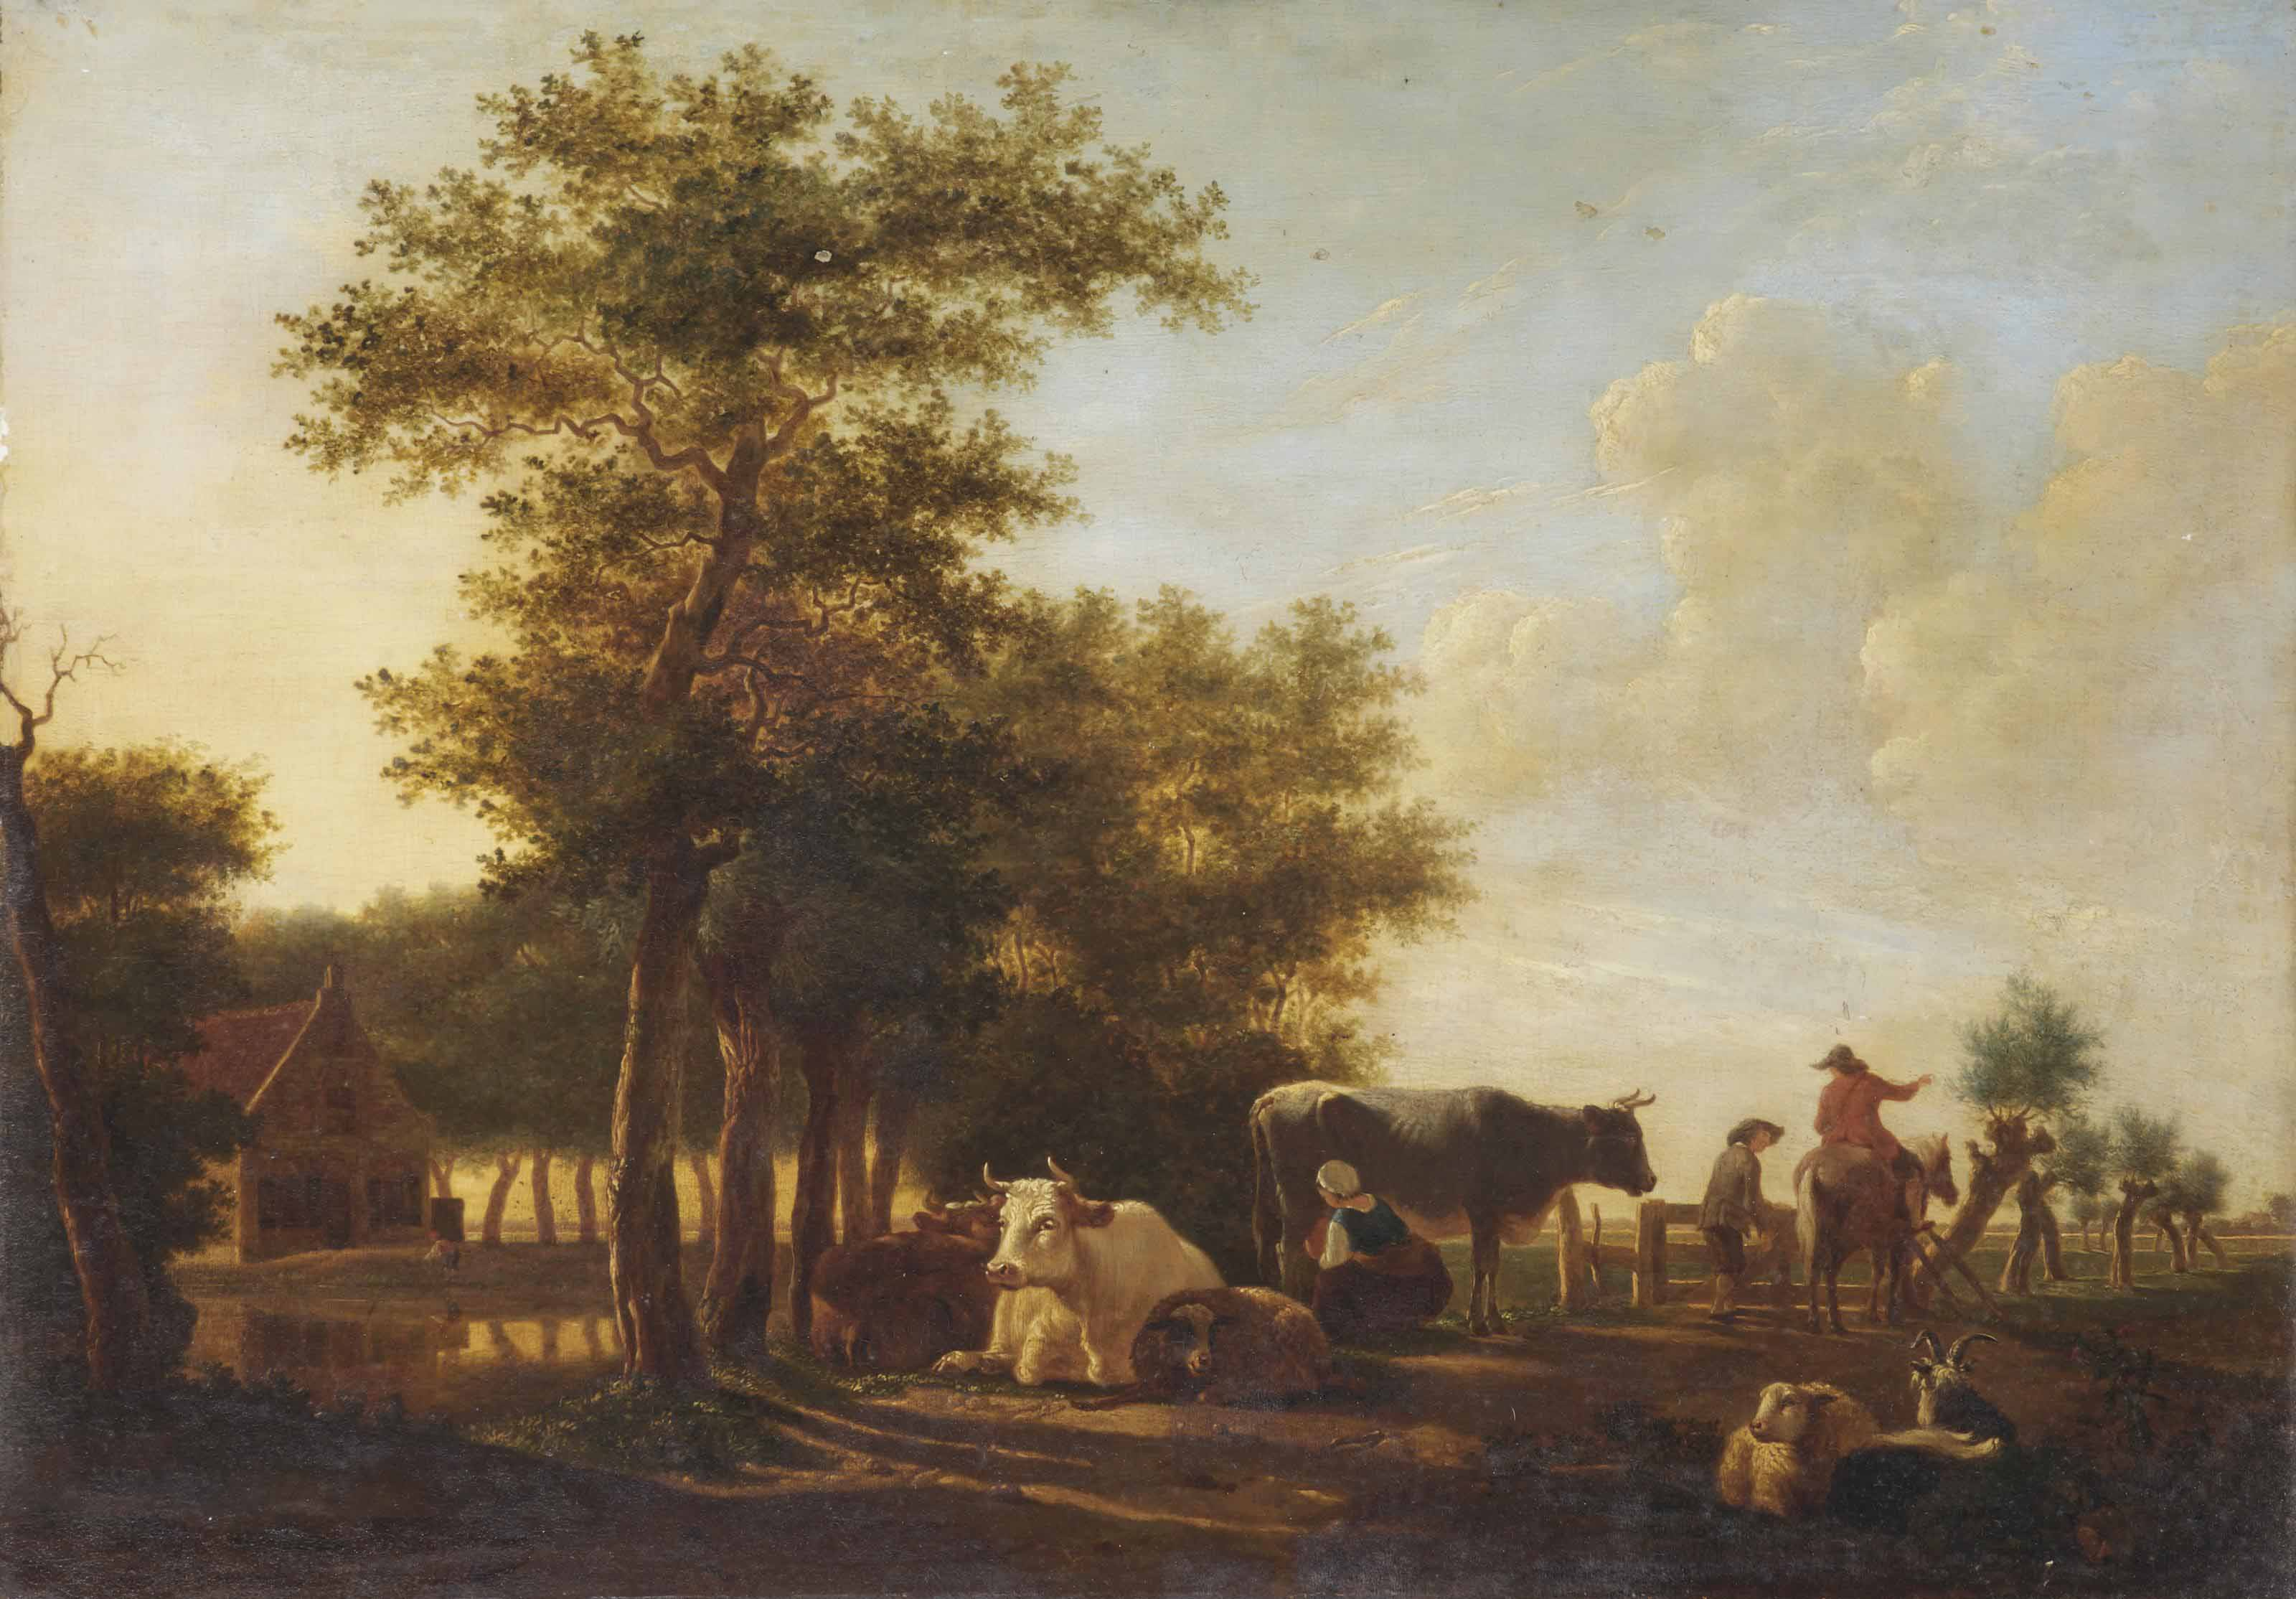 A pastoral scene with peasants and their cattle